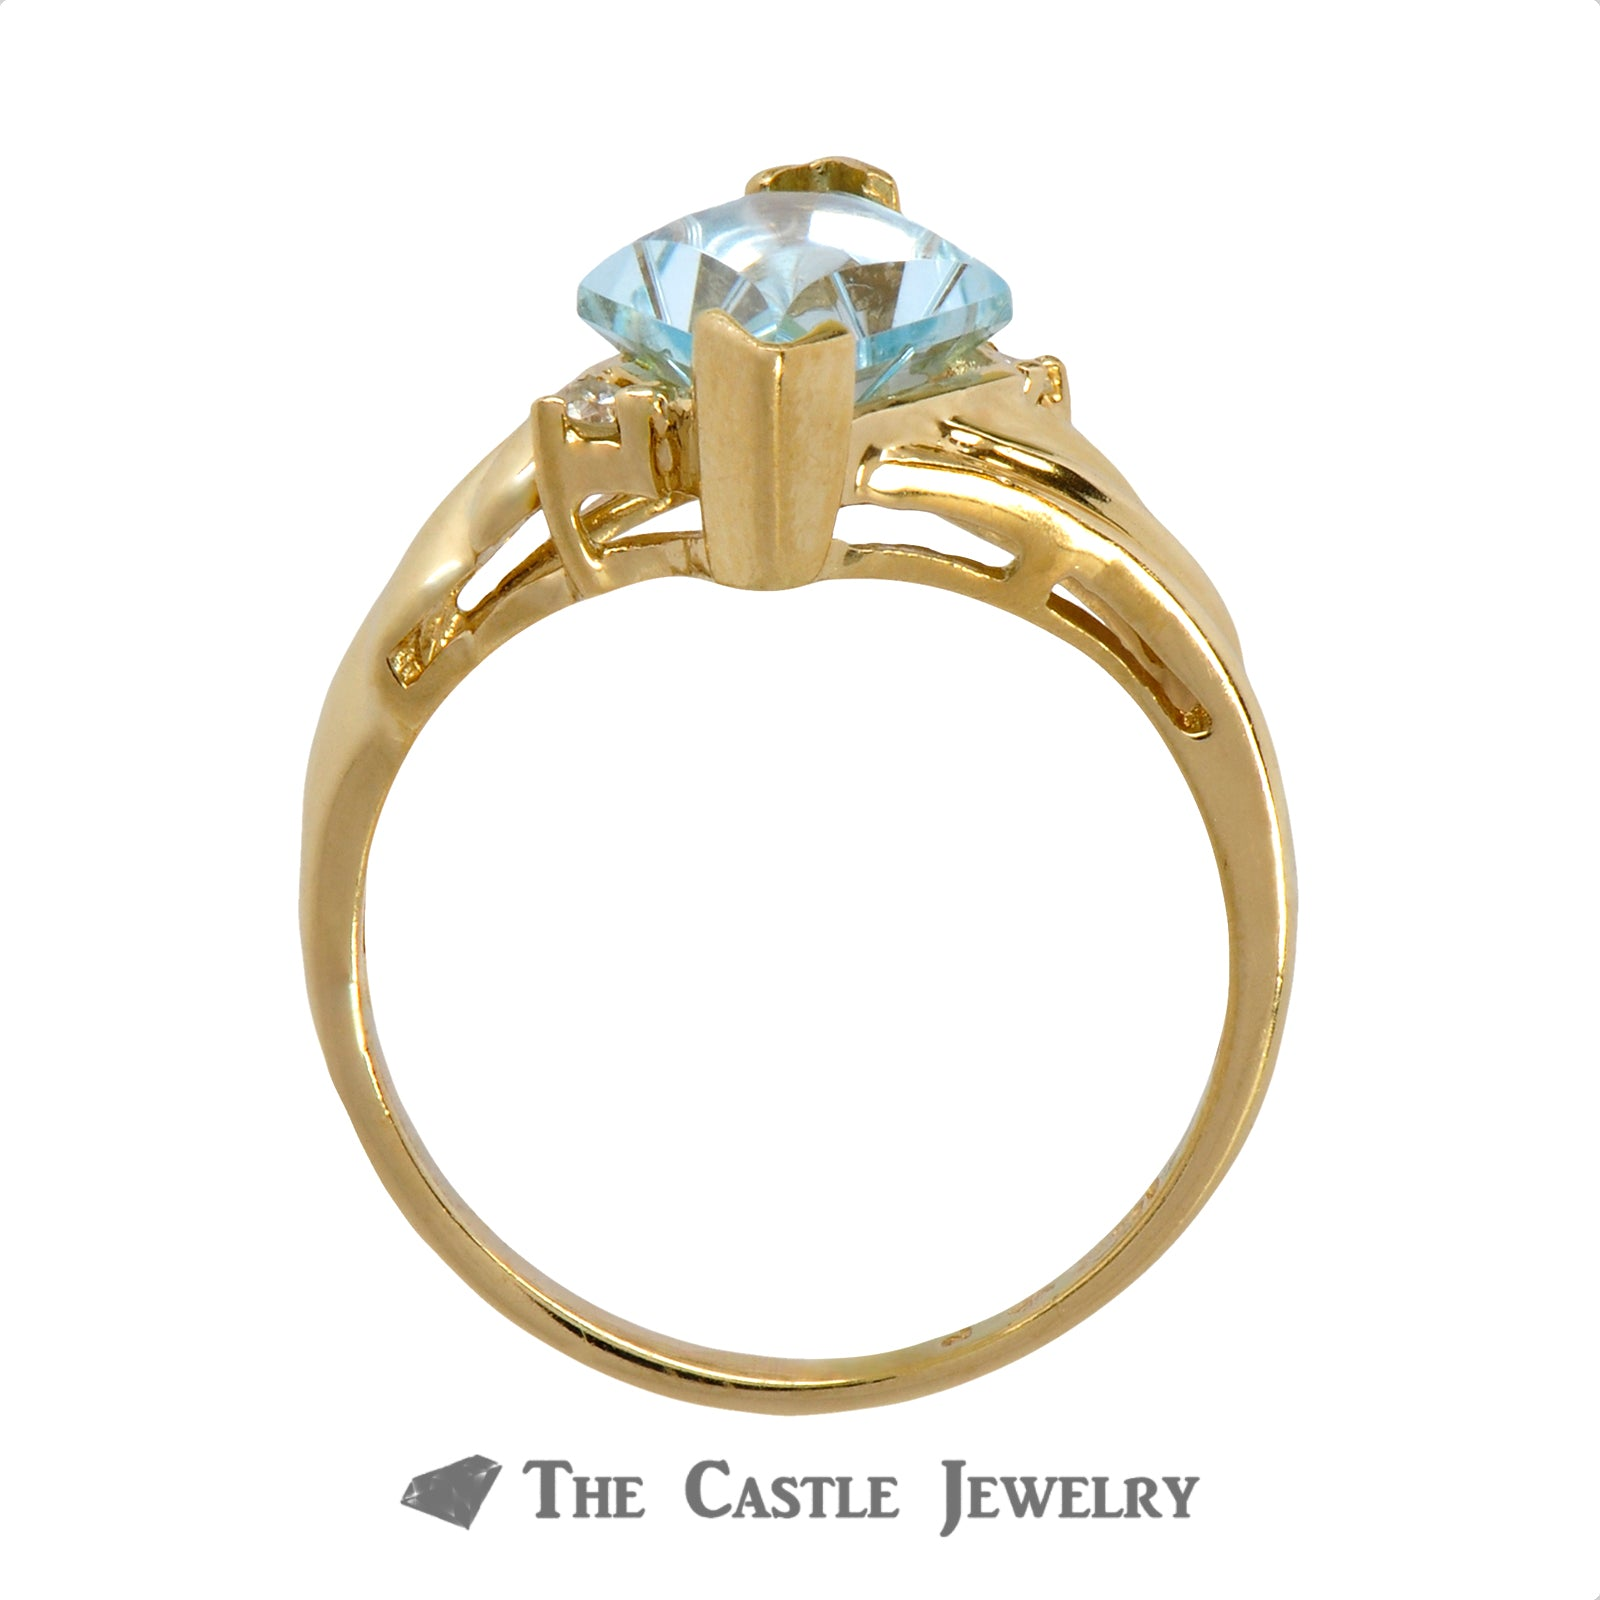 Unique Kite Cut Aquamarine Ring with Diamond Accents Crafted in Ridged 14k Yellow Gold Mounting-1